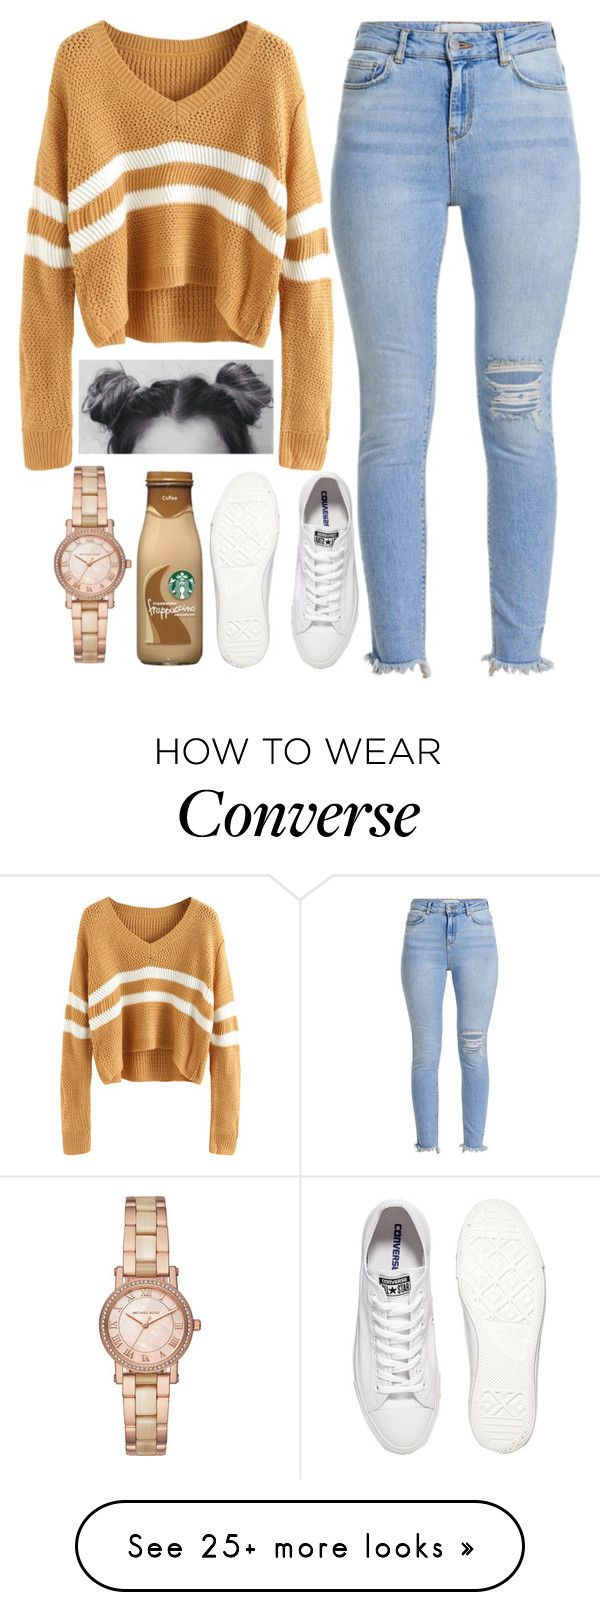 """Spaced out"" on Polyvore featuring Converse and Michael Kors"